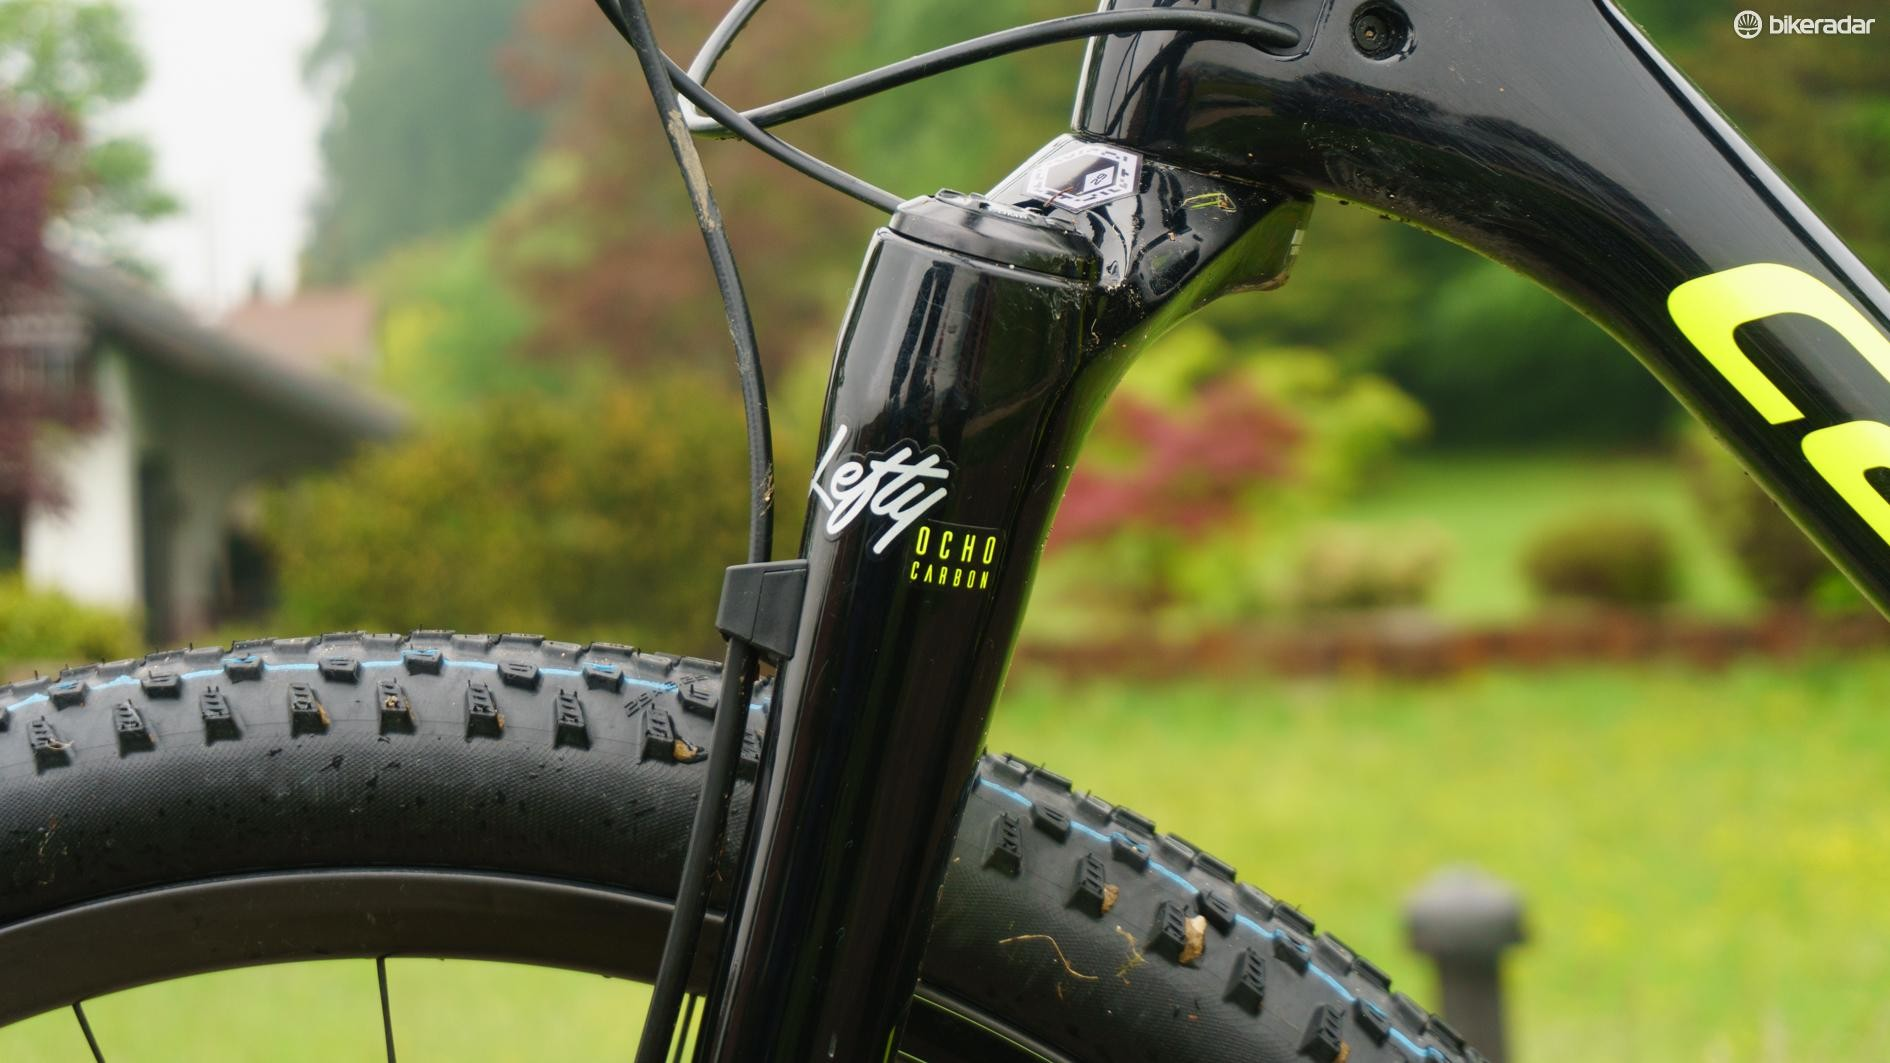 babefe31078 Everything you need to know about the new Cannondale Lefty Ocho fork ...